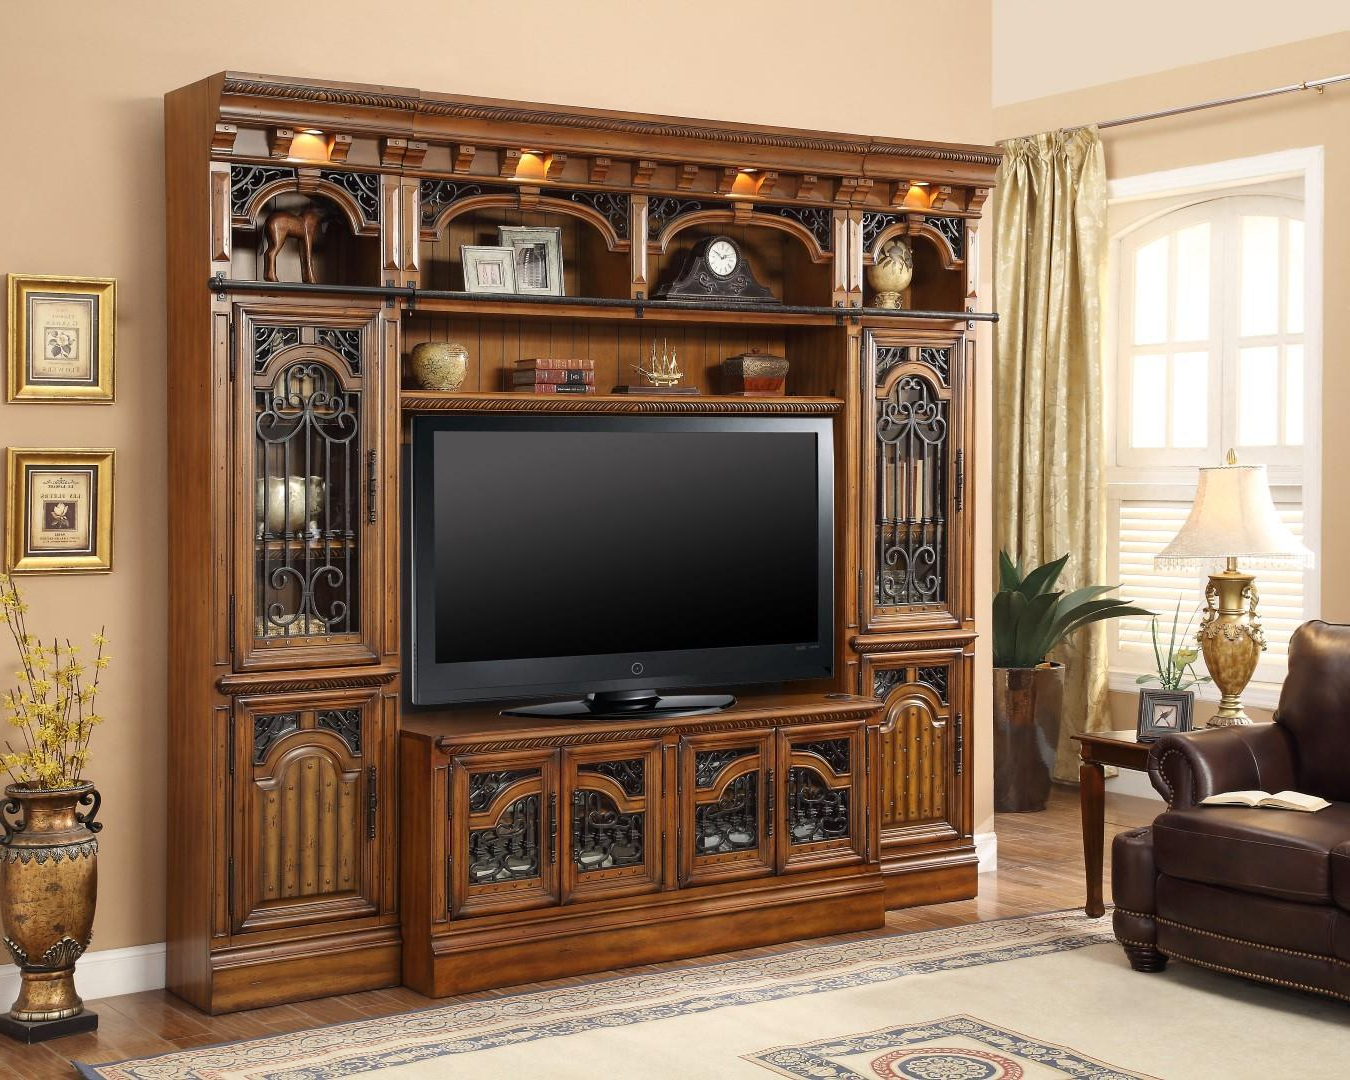 The Barcelona 60 Inch Tv Wall Unit – Office Furniture, Home Office With Regard To Most Current 60 Inch Tv Wall Units (View 19 of 20)